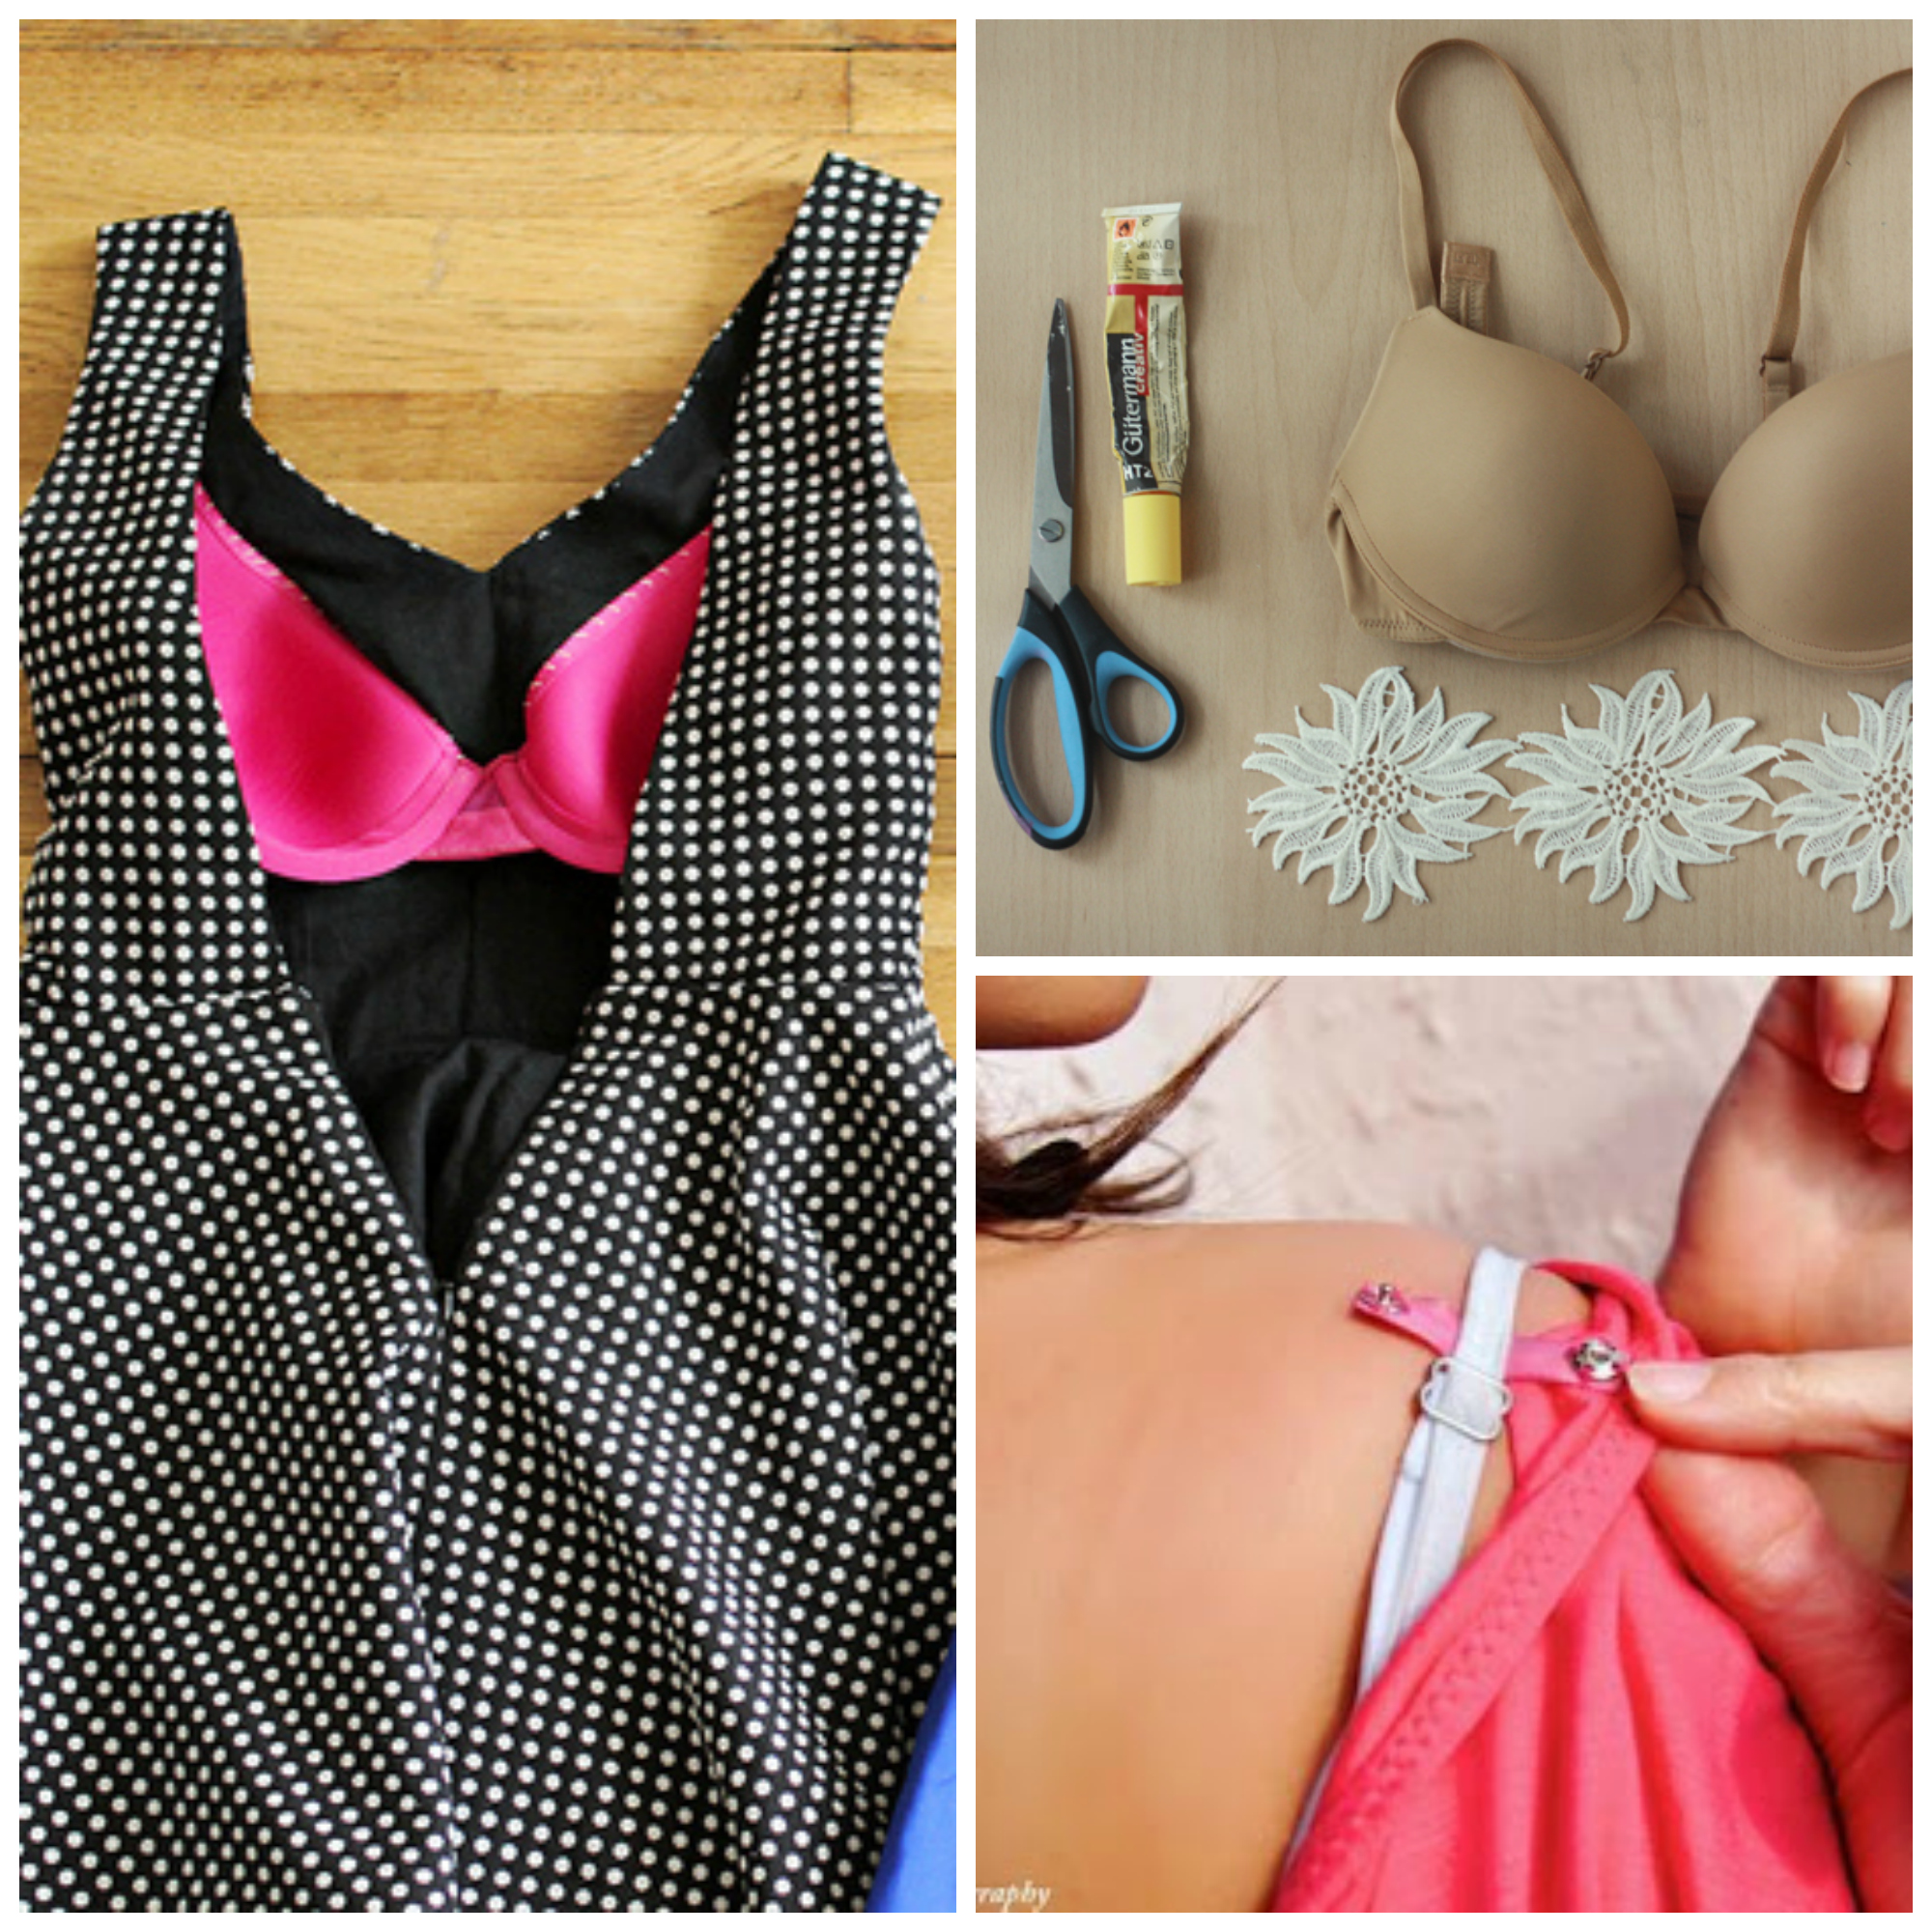 10 Bra Hacks That're Total Game Changers